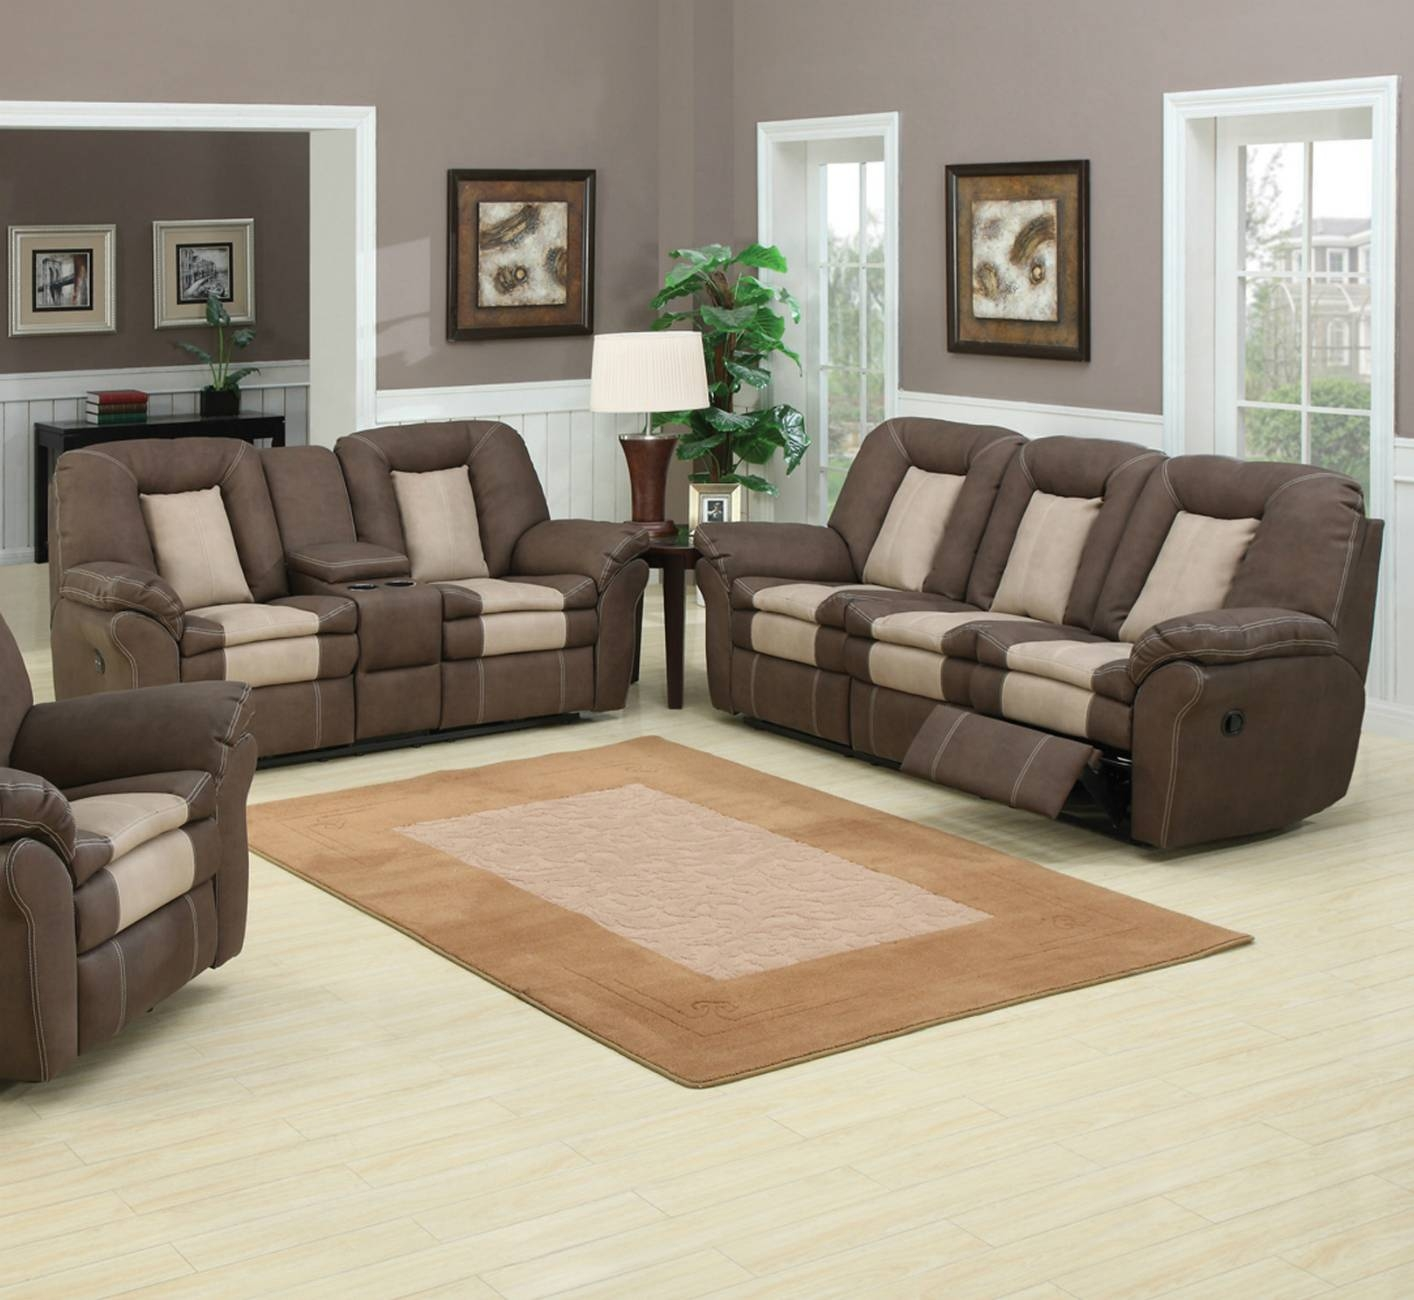 Ac Pacific Carson 117 Brown Leather Sofa And Loveseat Set In Los intended for Sofa Loveseat and Chairs (Image 1 of 30)